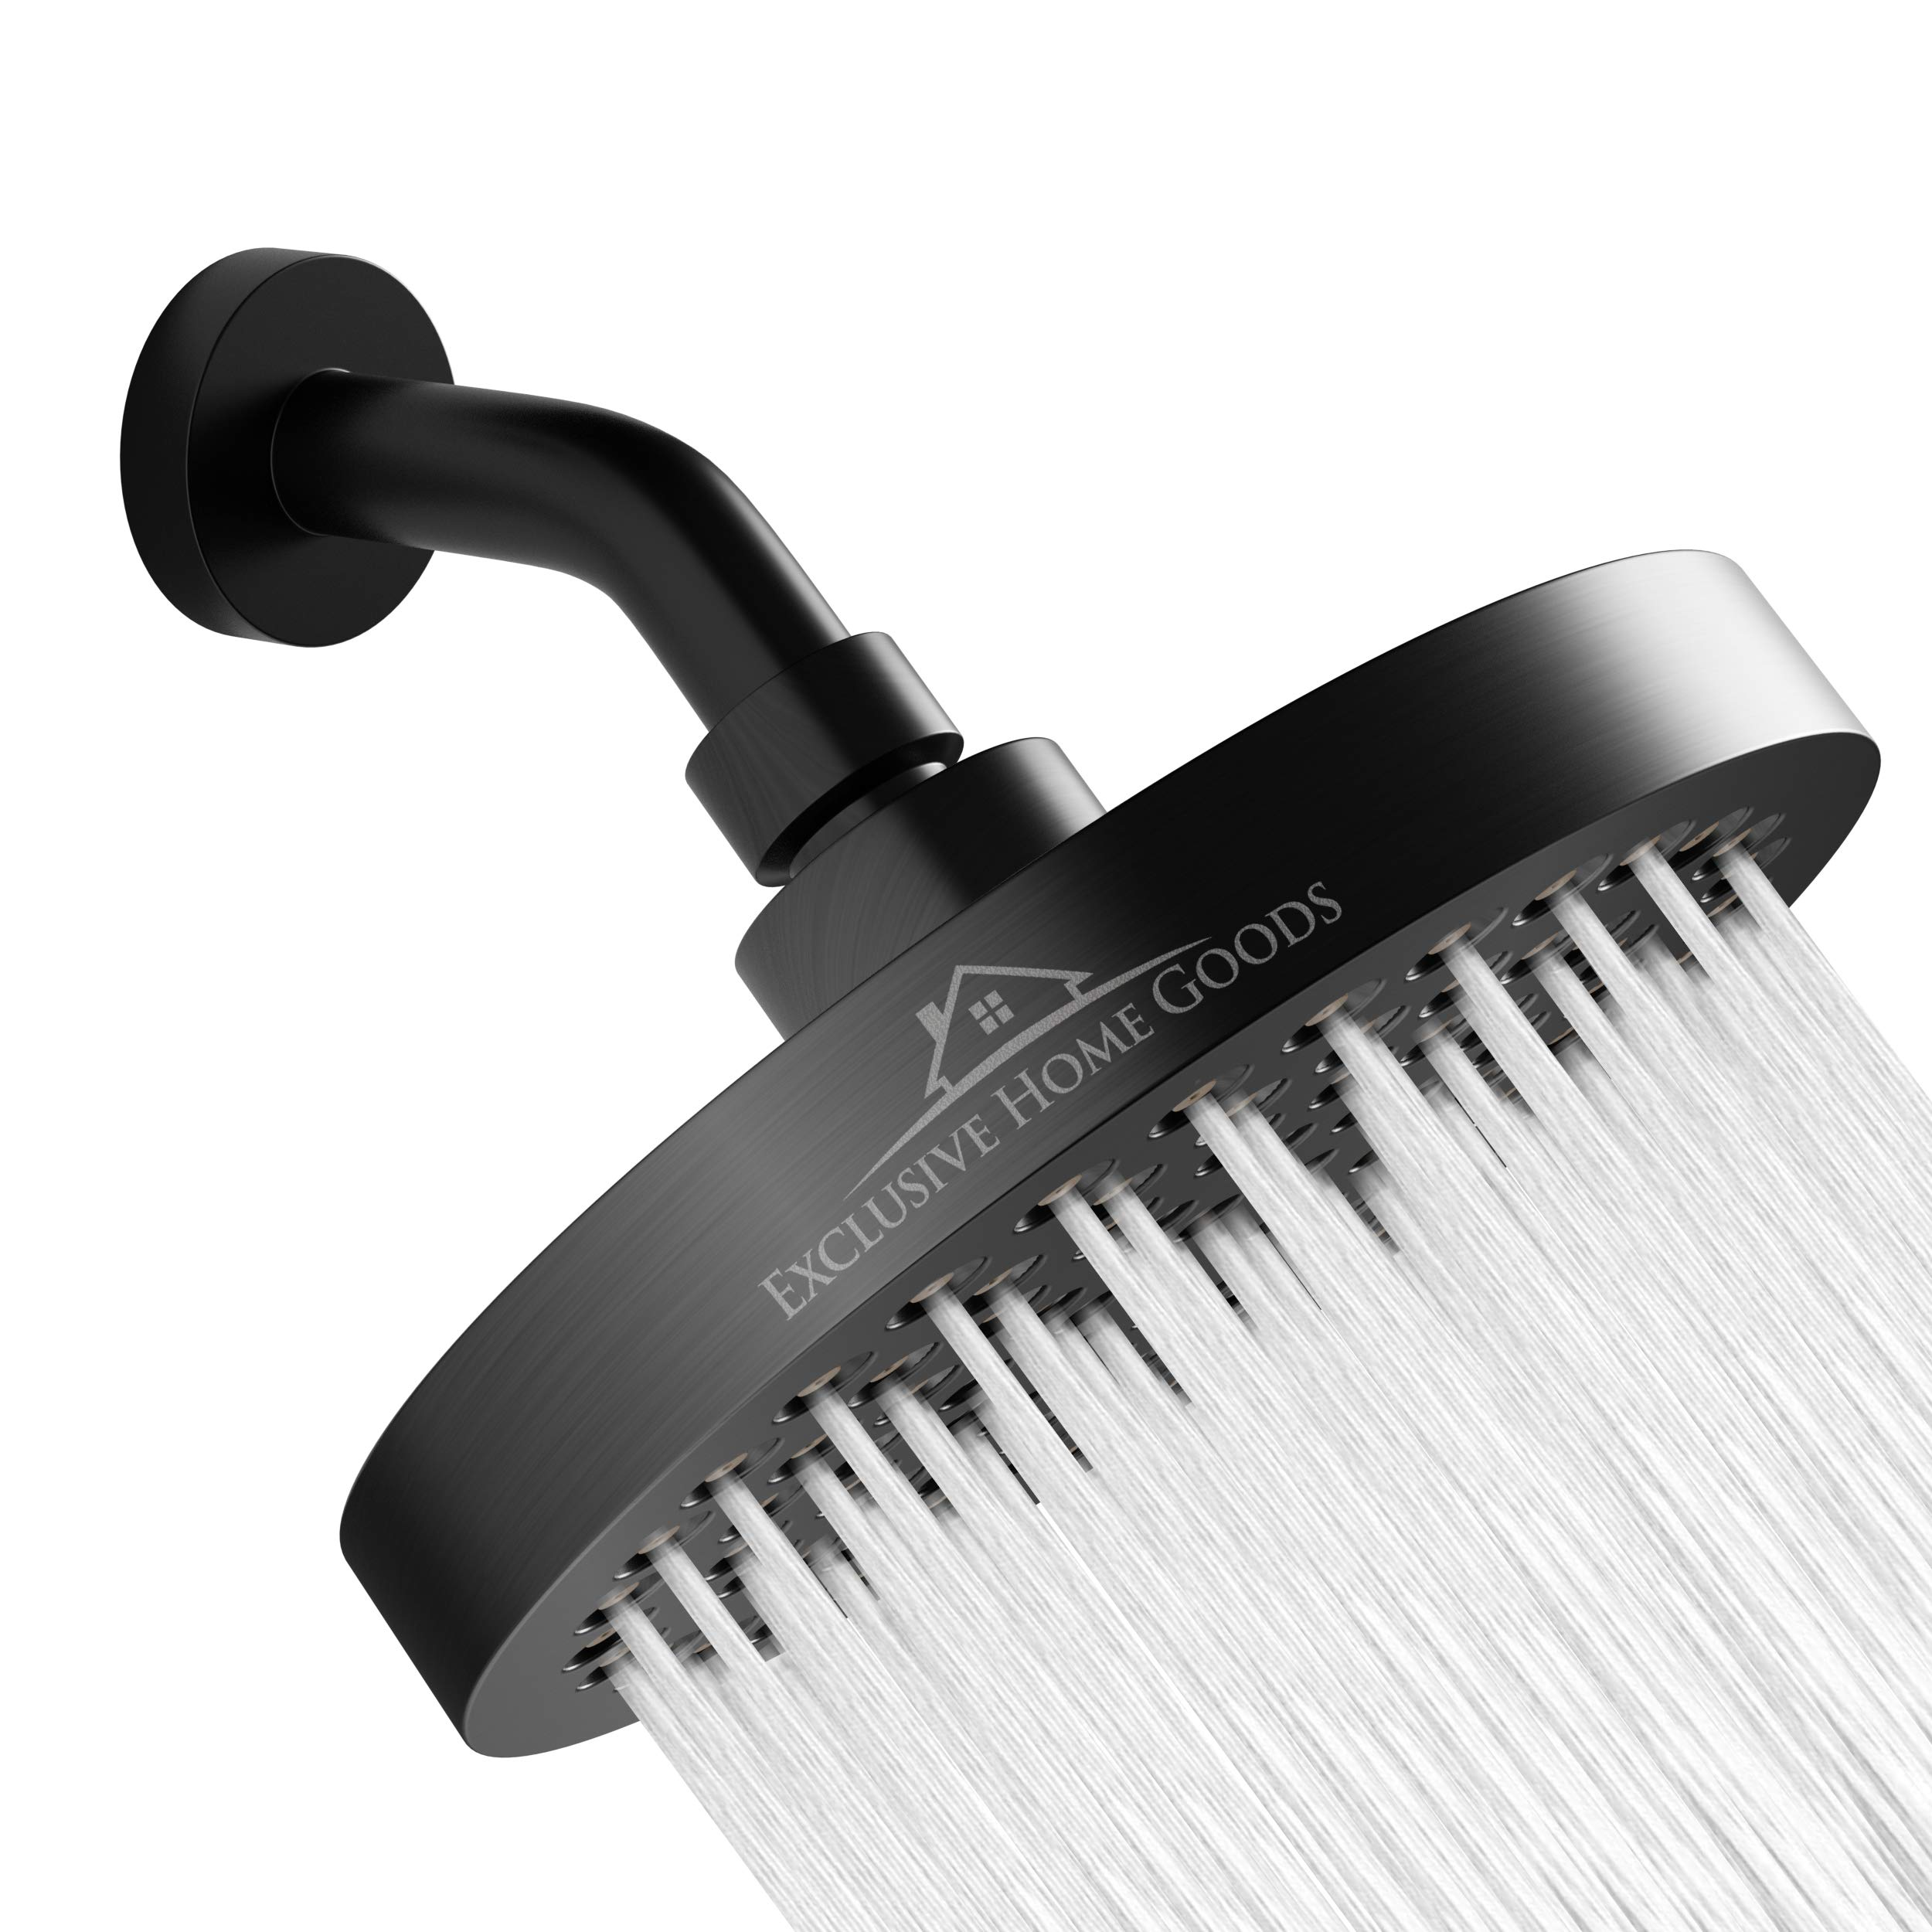 Luxury Rainfall Shower Head - High-Pressure showerhead Jets, rain shower head Ant-Clog Silicone Nozzles (1.8 GPM, Matte Black)